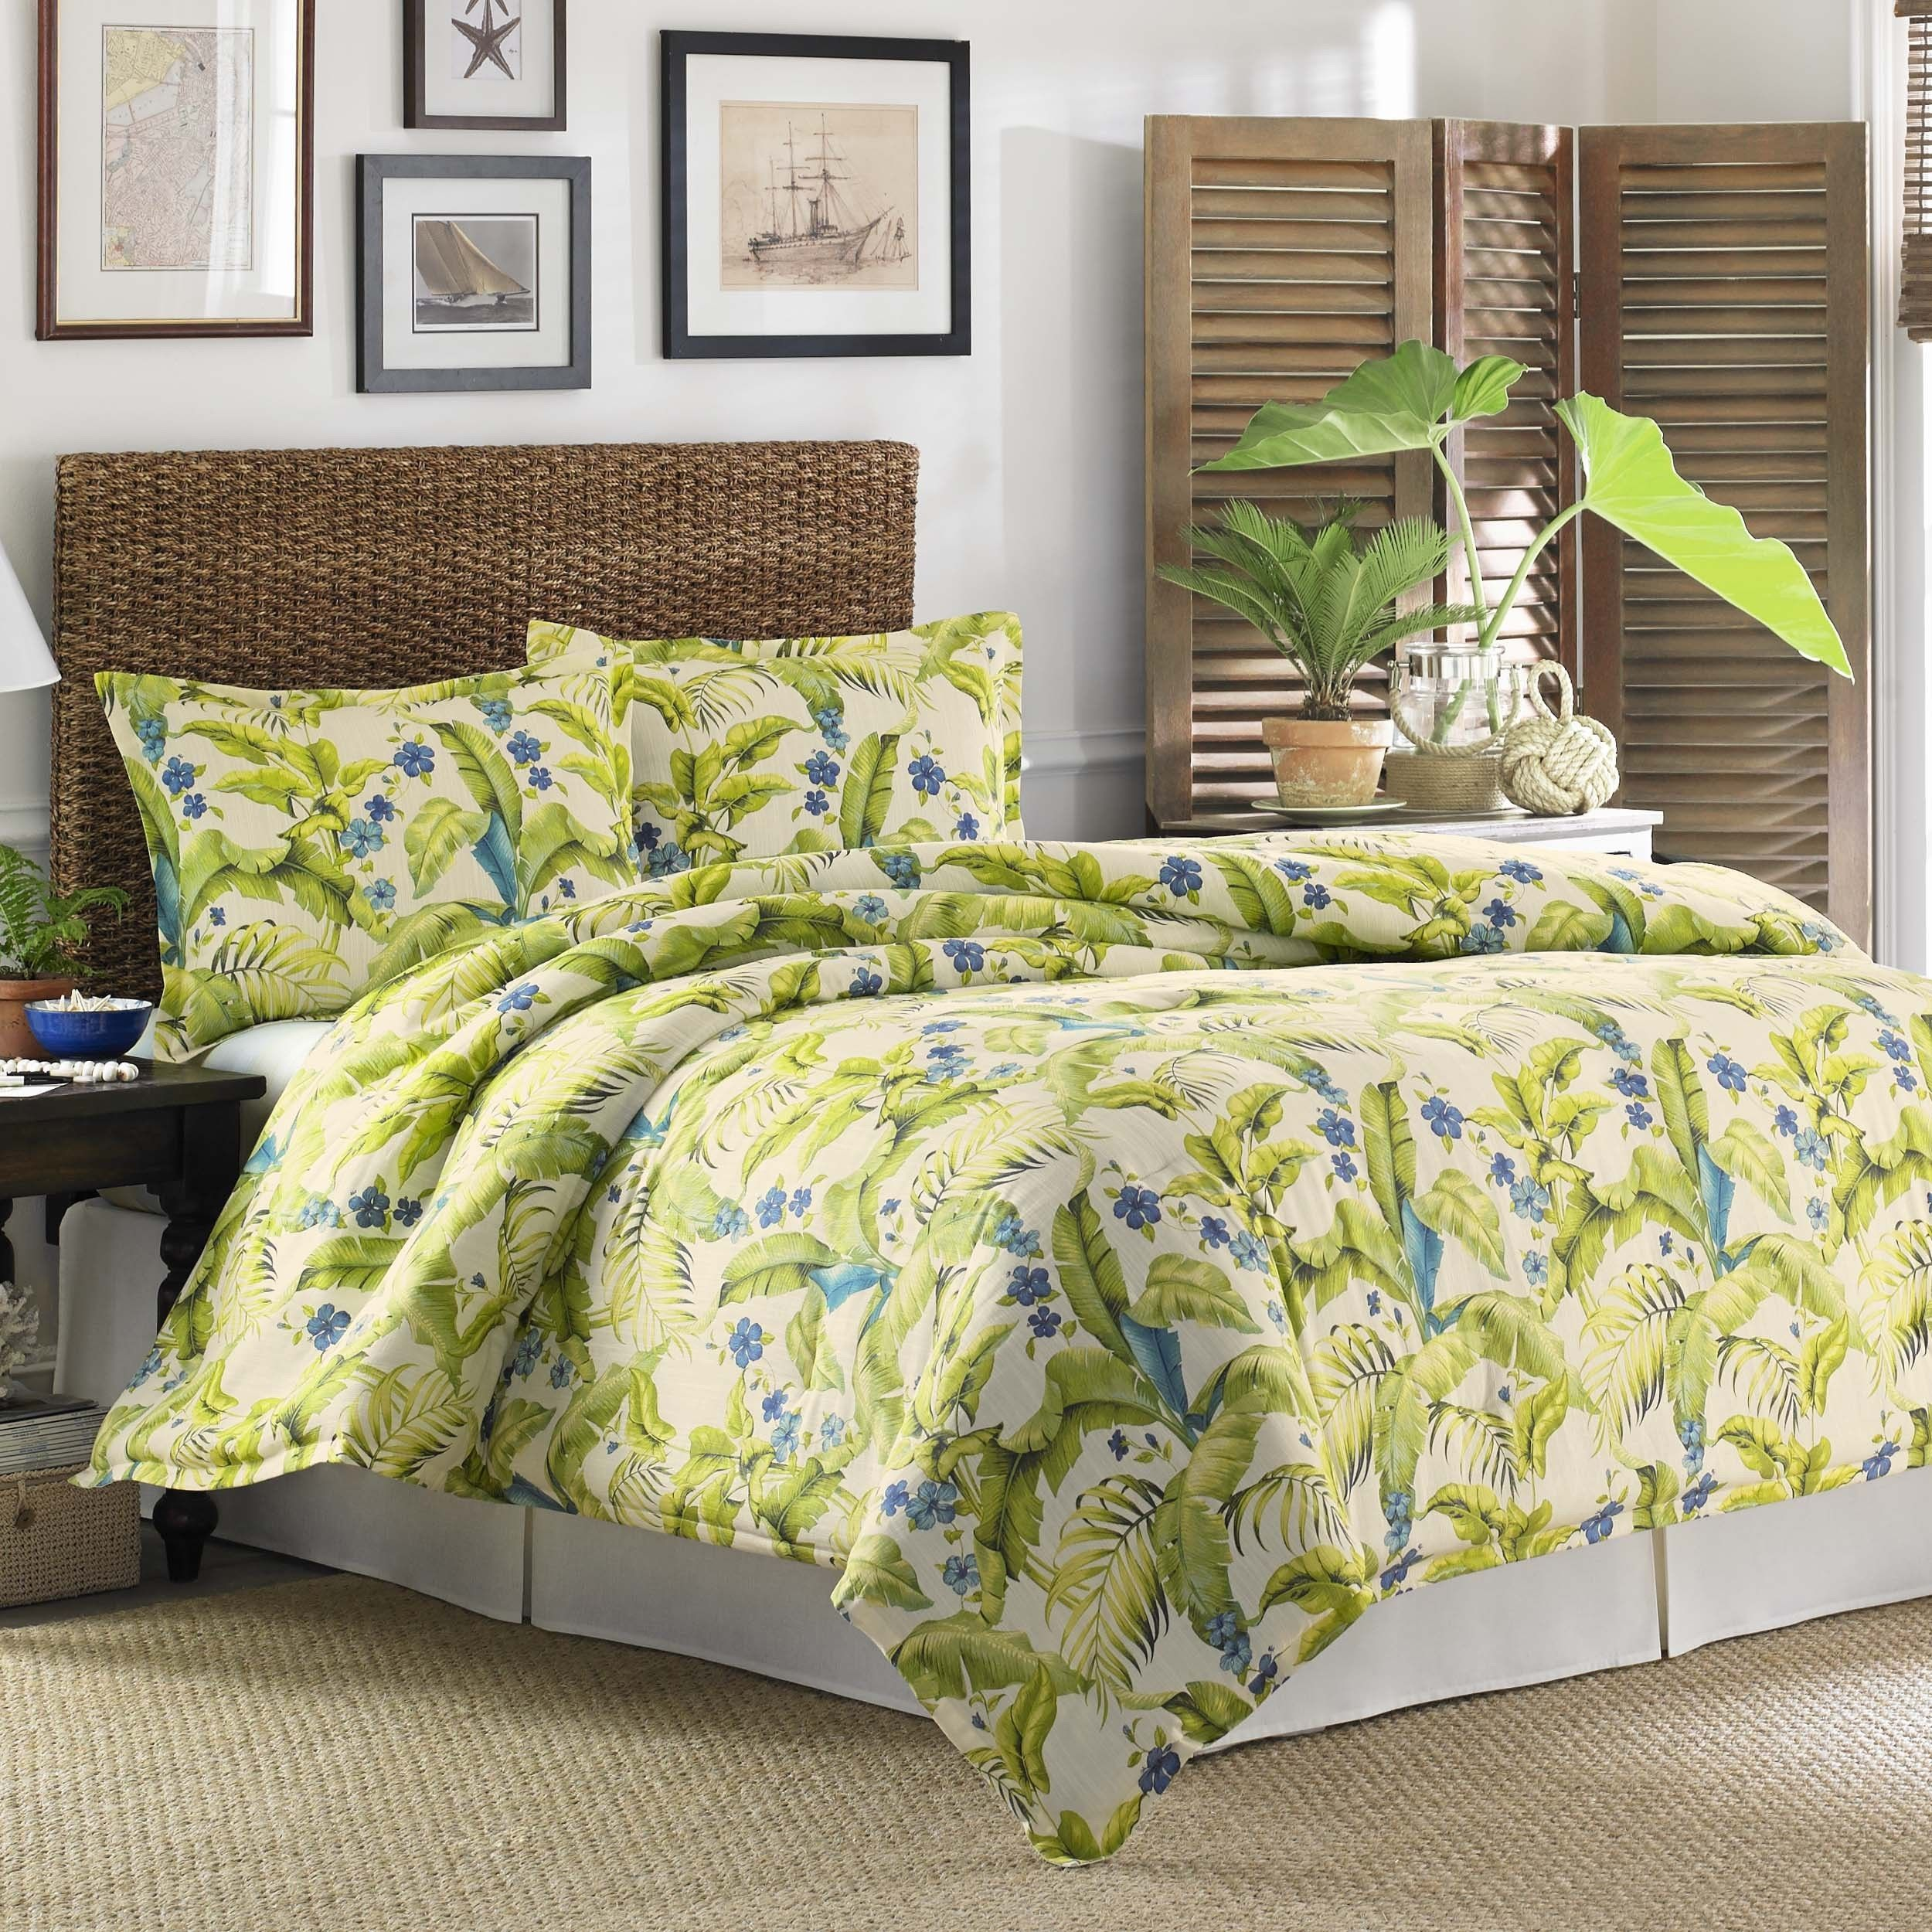 Cancun Palm 4 Piece Bedroom Set Wicker Rattan Queen King: Tommy Bahama Palm 4-piece Comforter Set